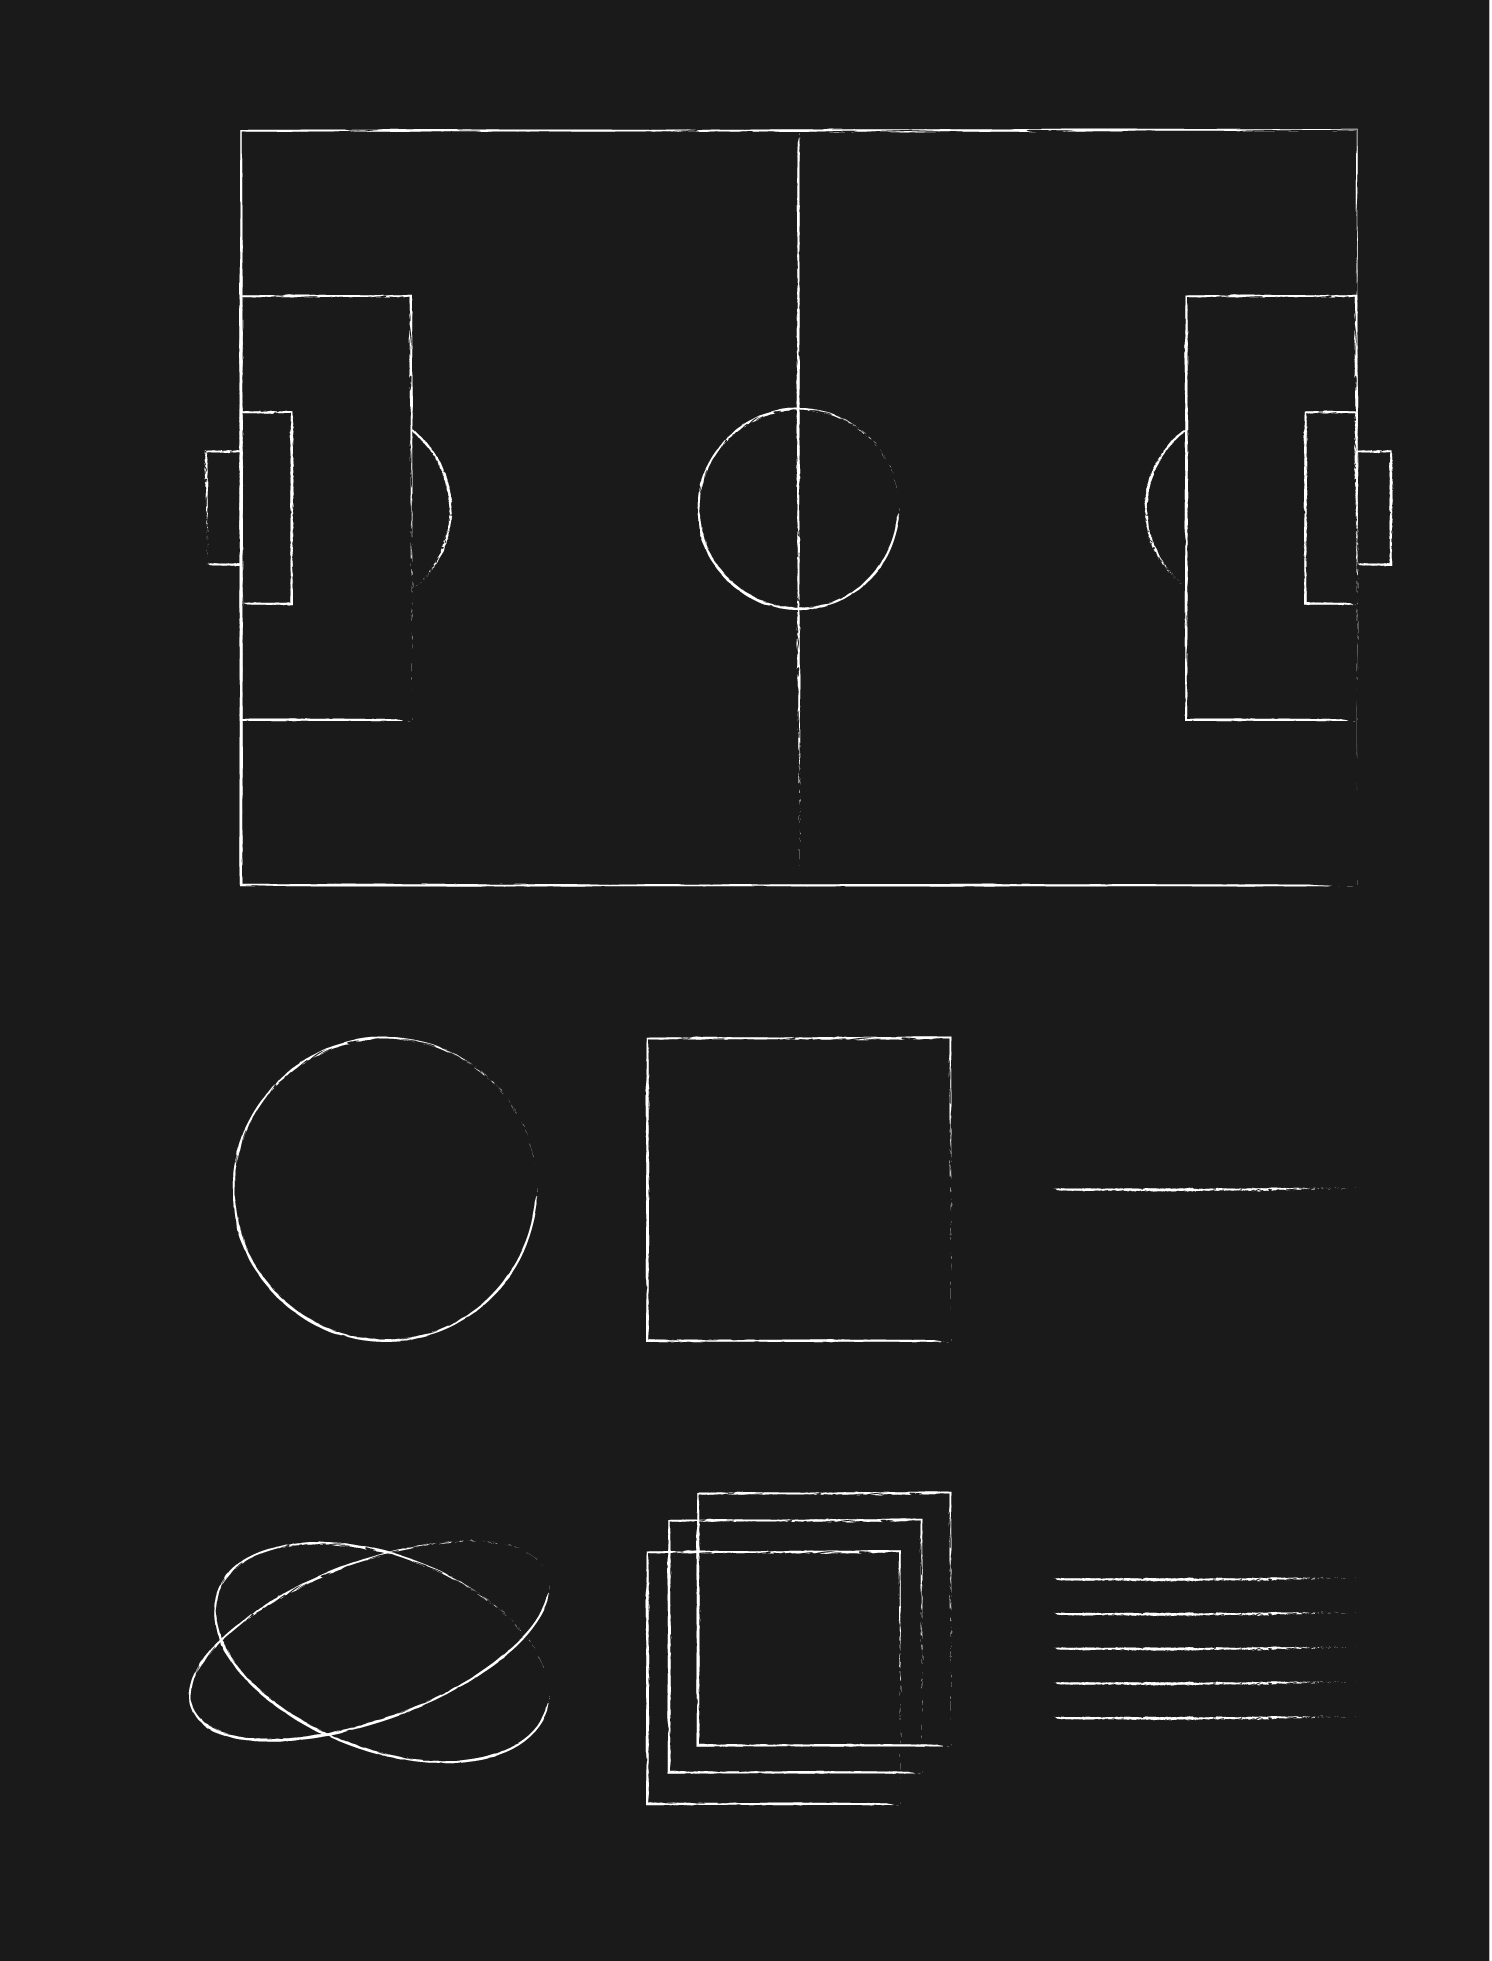 JOGO Design Concept, The Playing Field